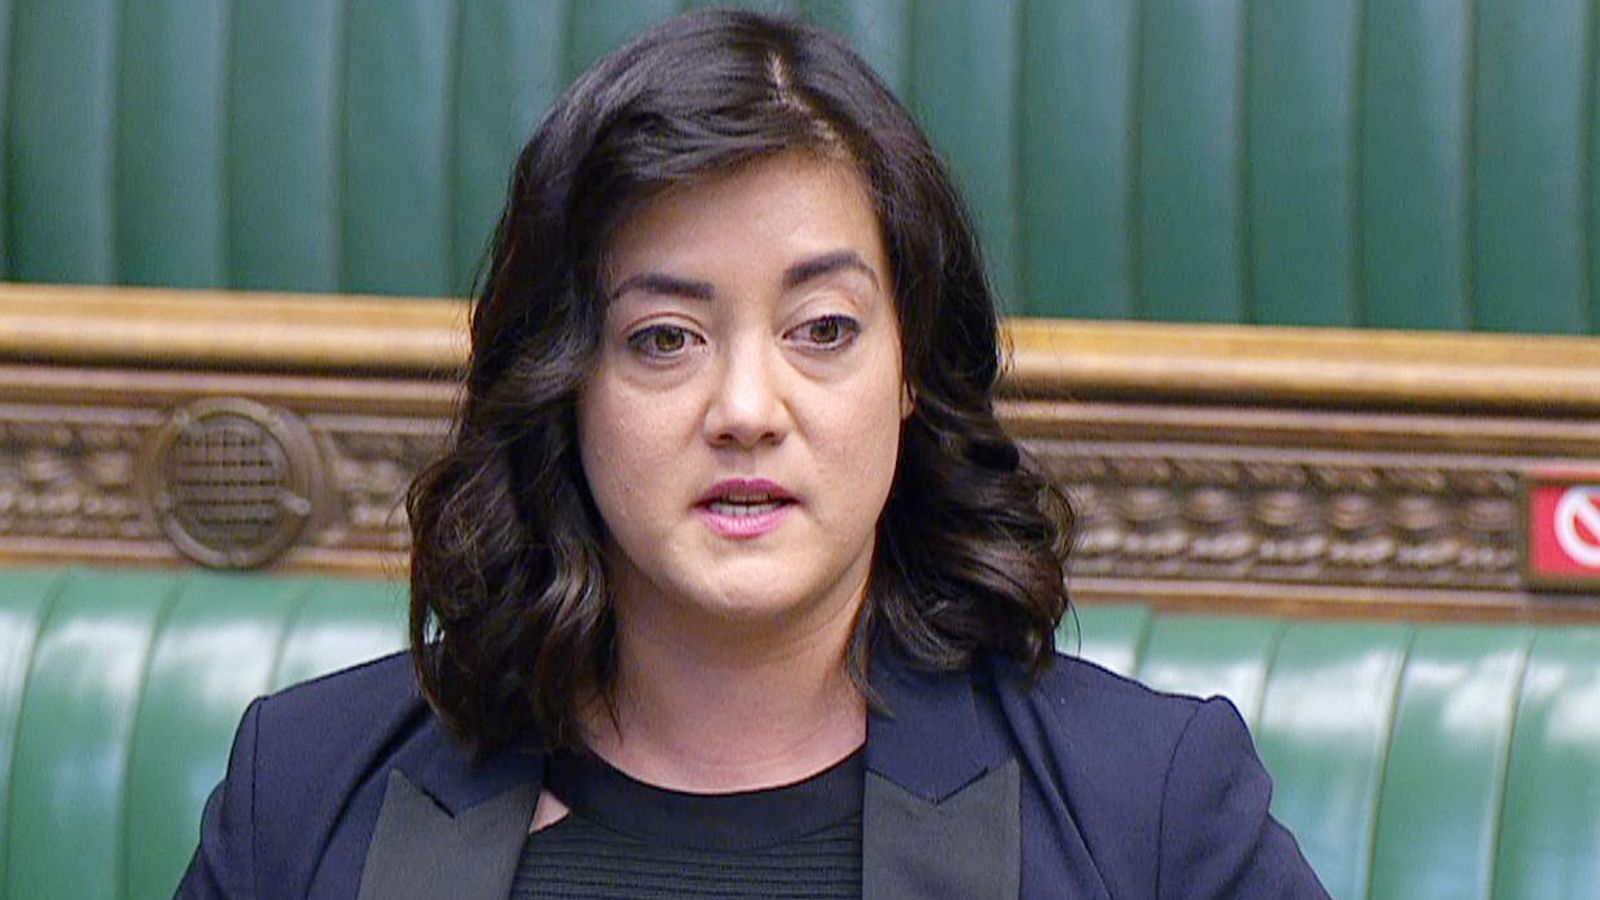 news.sky.com: 'Coronavirus given the face of an East Asian person': Parliament debates racism during pandemic